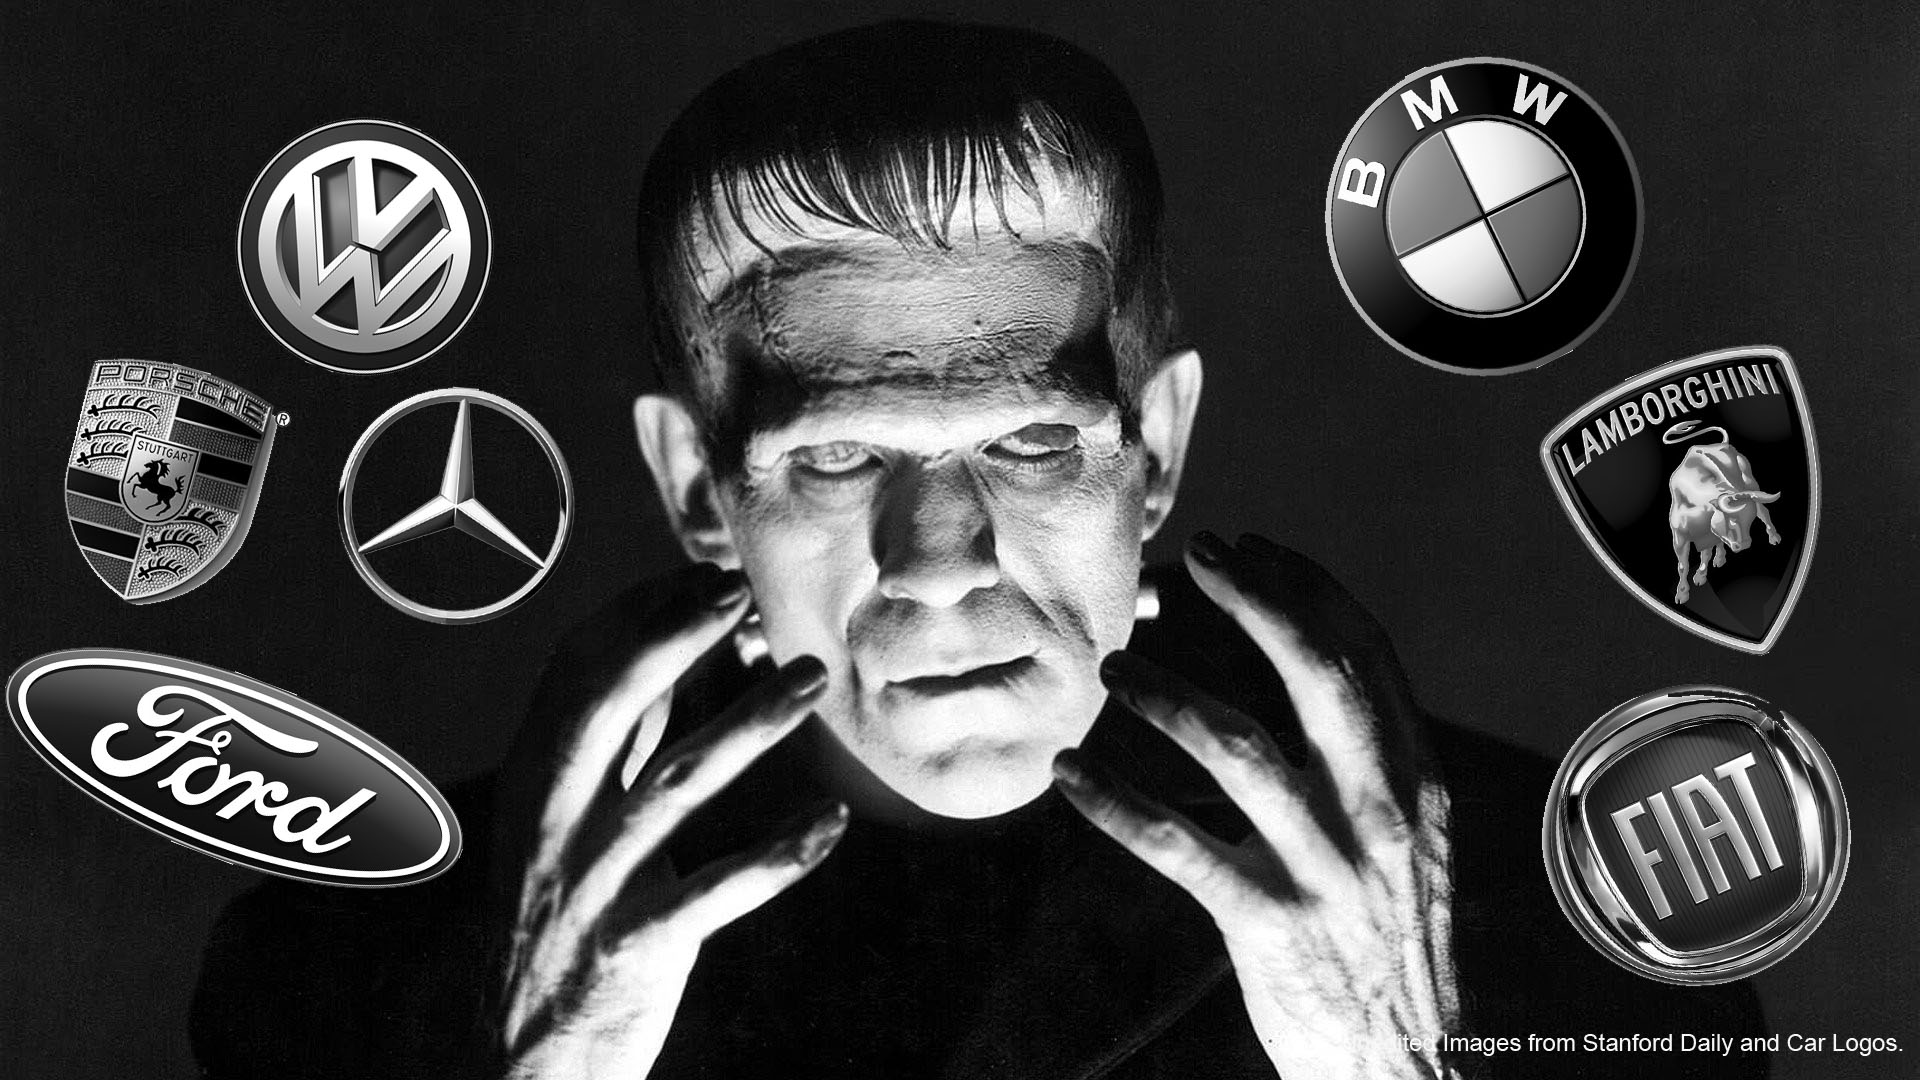 Frankenstein shares.. Well, not exactly like this. Images from Stanford Daily and Car Logos.